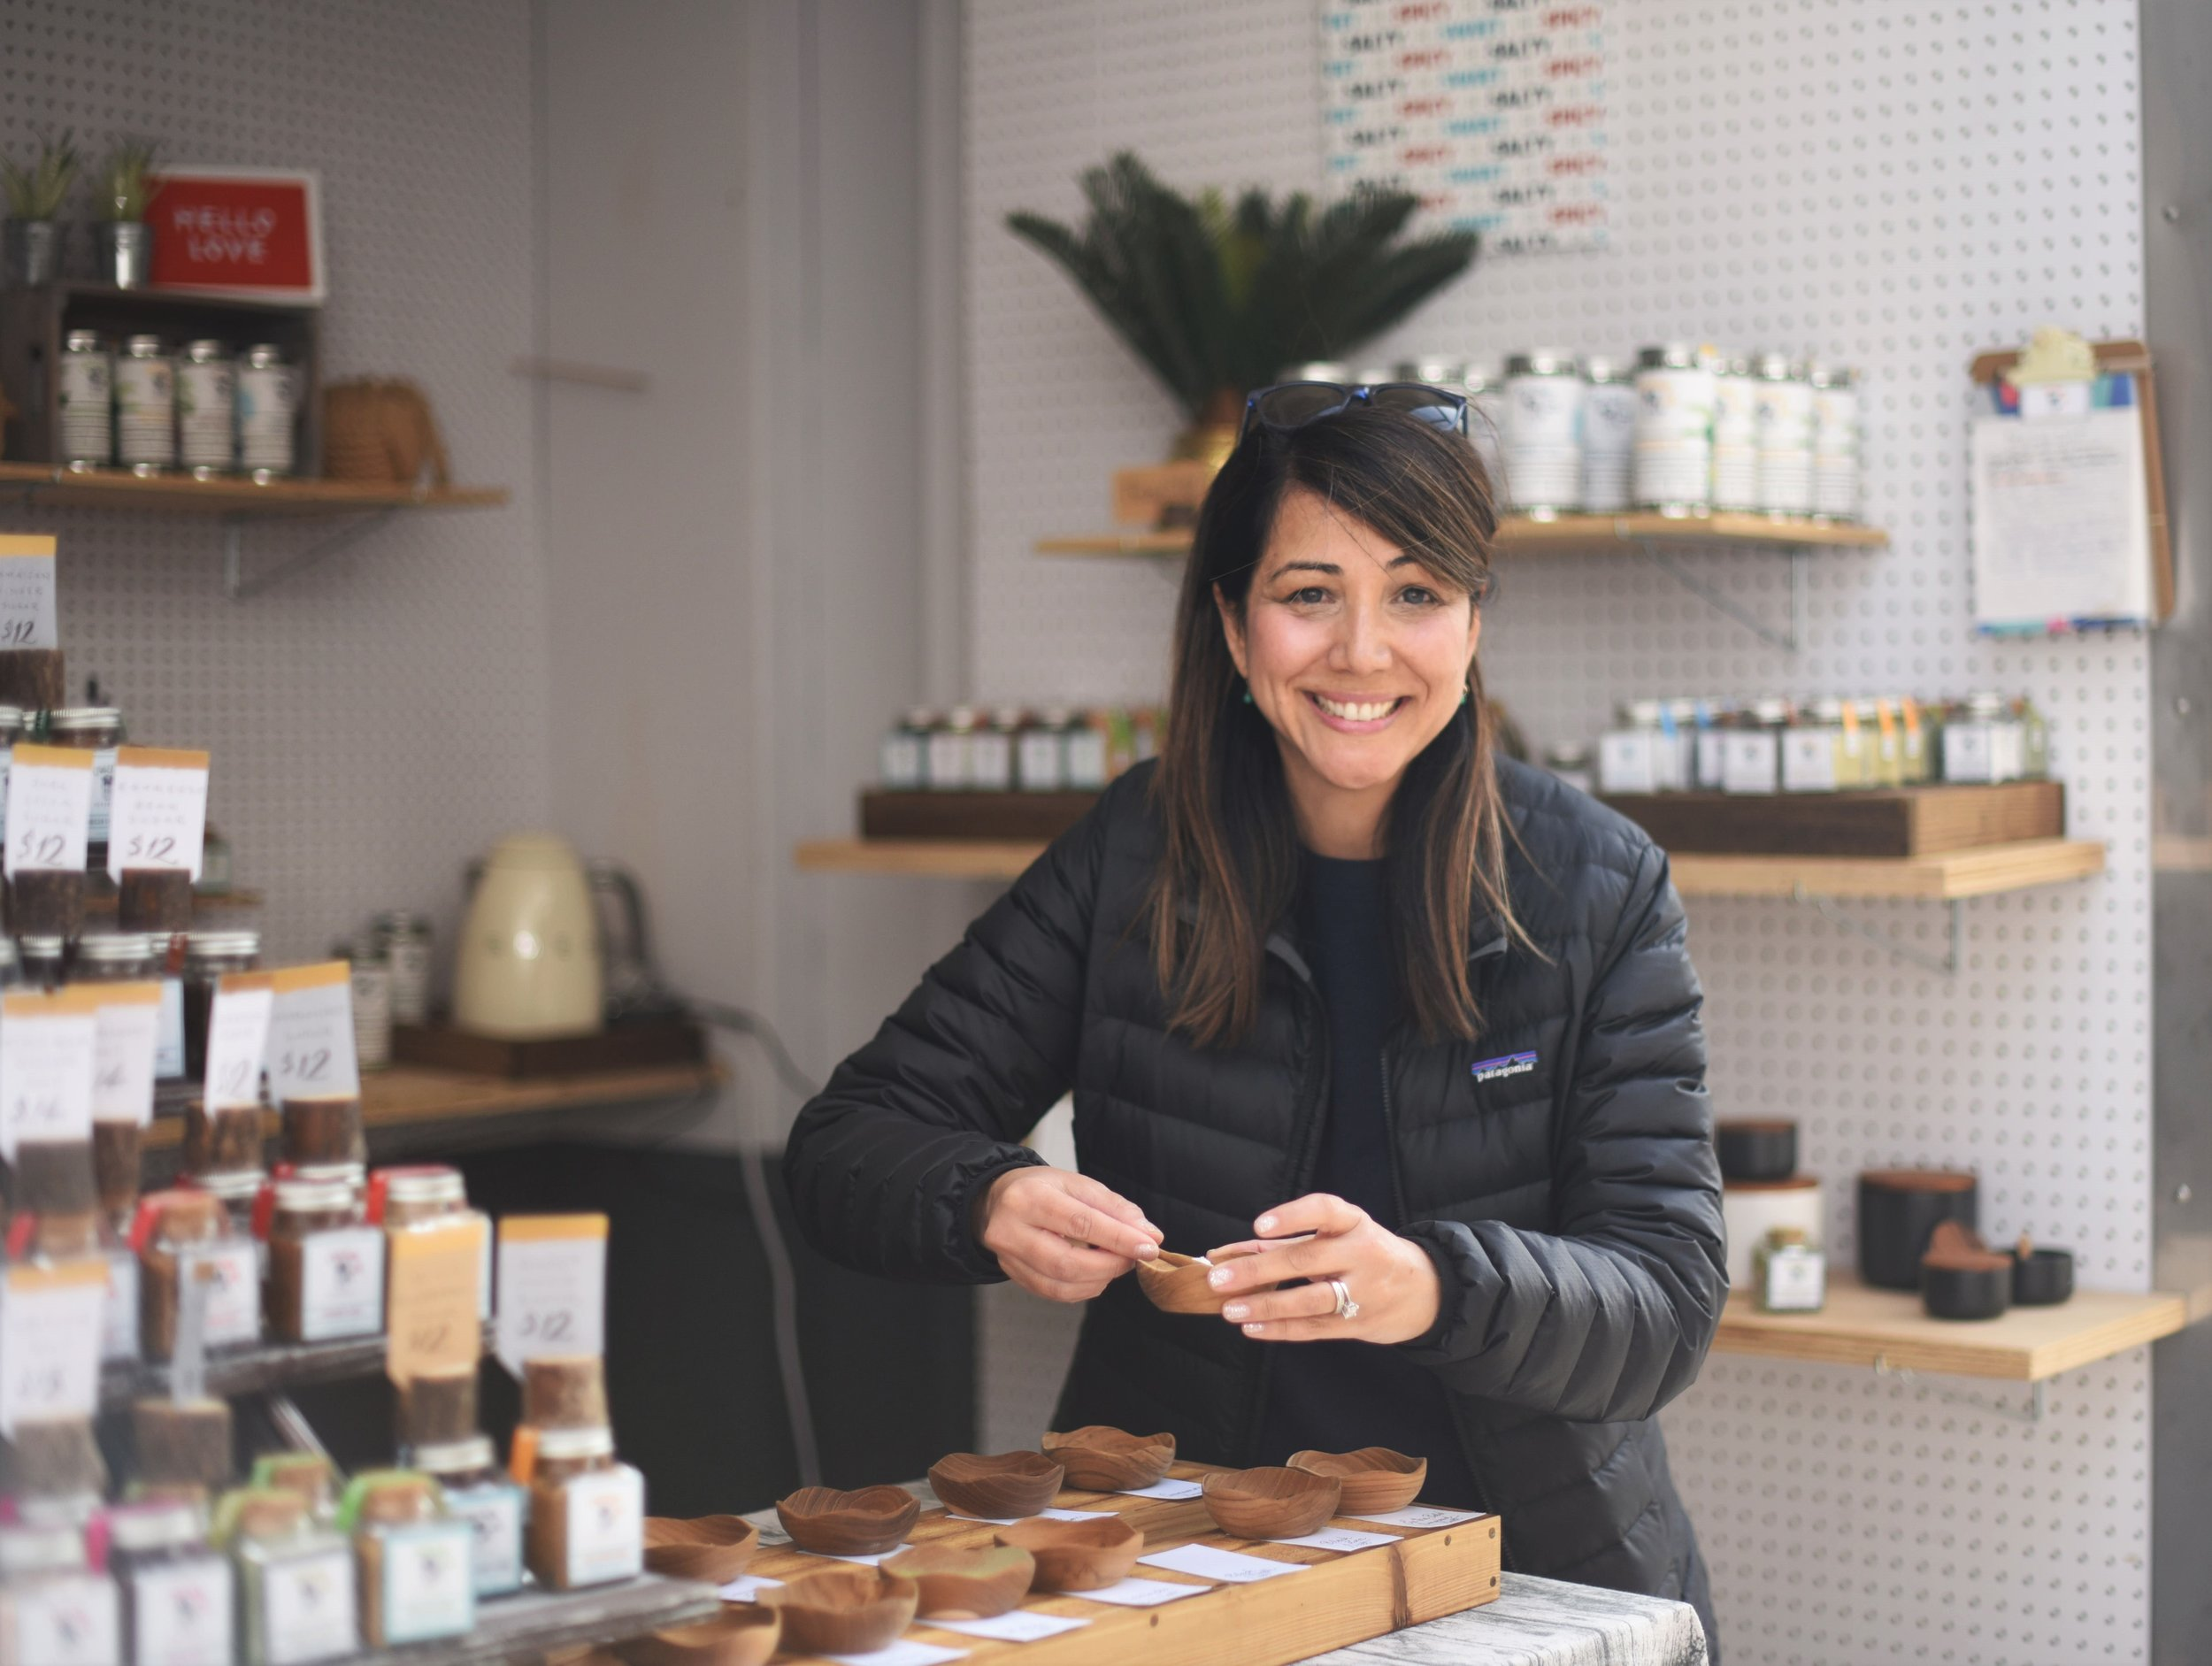 Old Salt Merchants - (@oldsaltmerchants)Have you ever heard of Matcha Tea Salt? Probably not. The first time they sold with us was in December 2018 in Austin, Texas. According to Monique Rodriguez, it was her first show ever and she almost ran out of everything. Her saving grace: her best friend Lina! Even with uncomfortable shoes and no knowledge of how to sell products, she winged it like a pro! There's no doubt that this is a special company that sells one-of-a-kind high quality salts, sugars, teas, and spices.